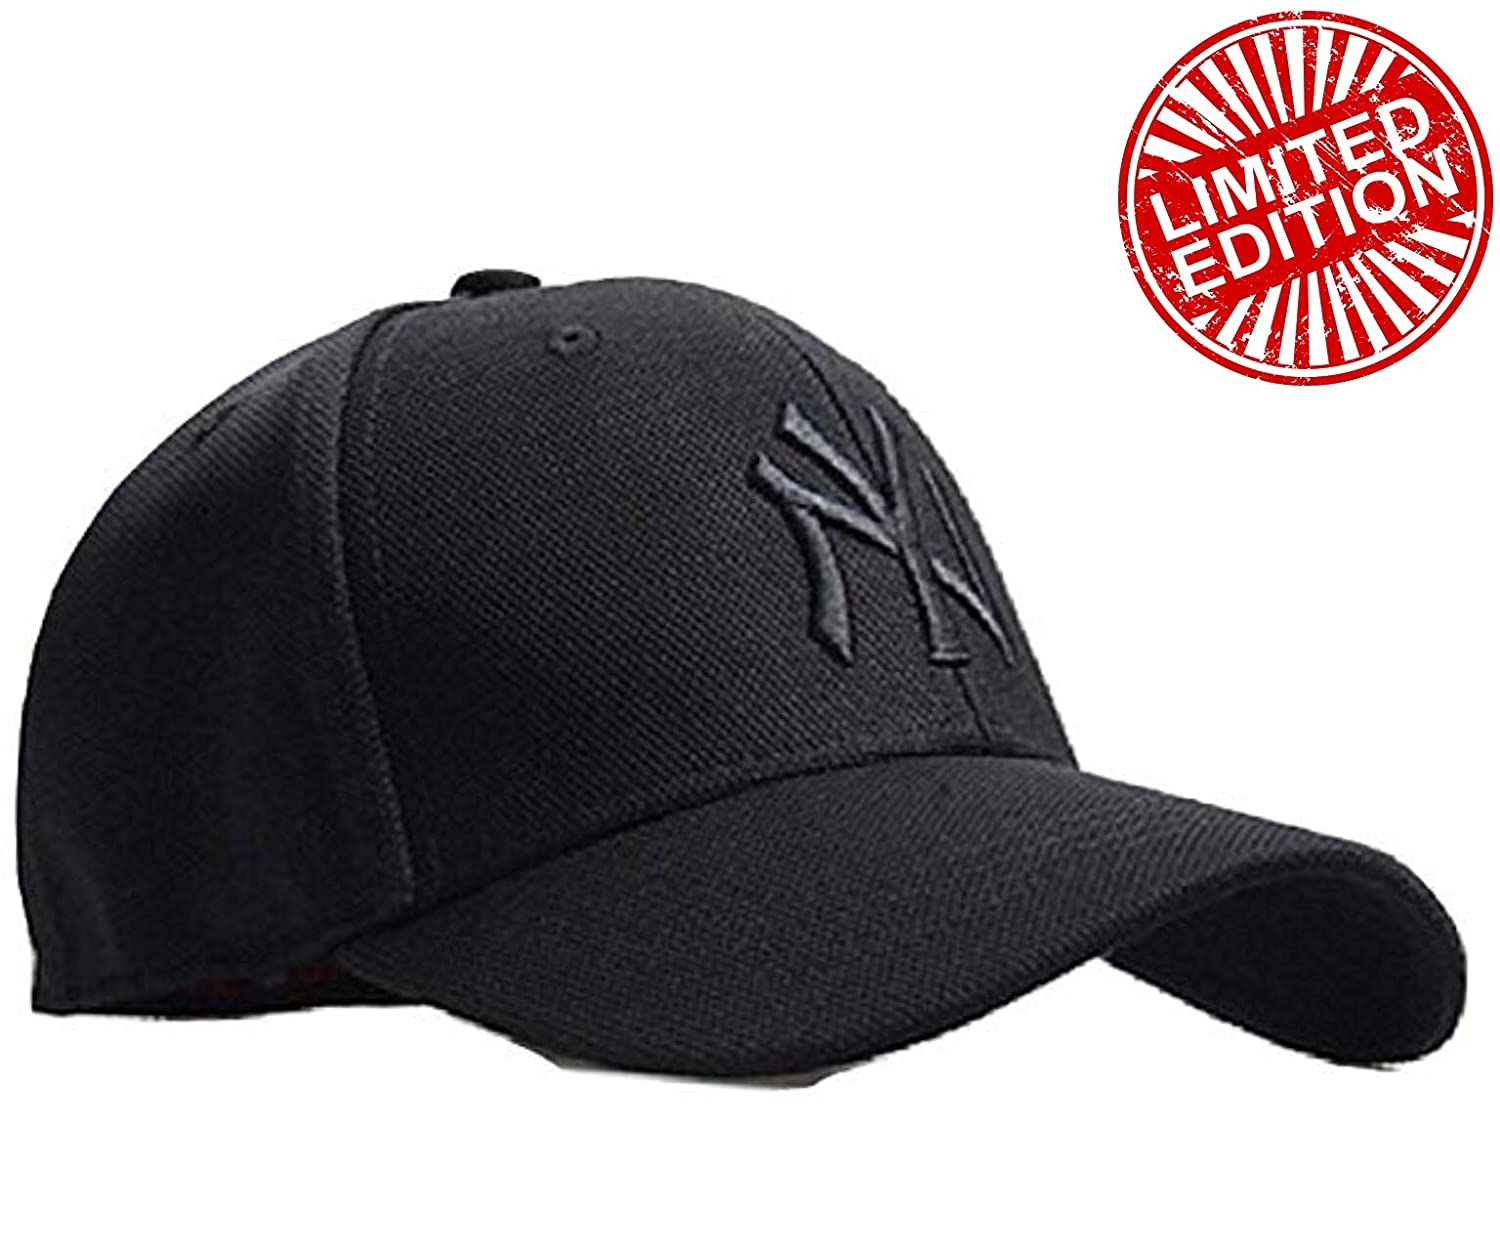 Buy MoohMaya Flexifit Stretchable Black NY Solid Caps for Men   Women for  Sports   Outdoor Online at Low Prices in India - Amazon.in 18dbc0831281